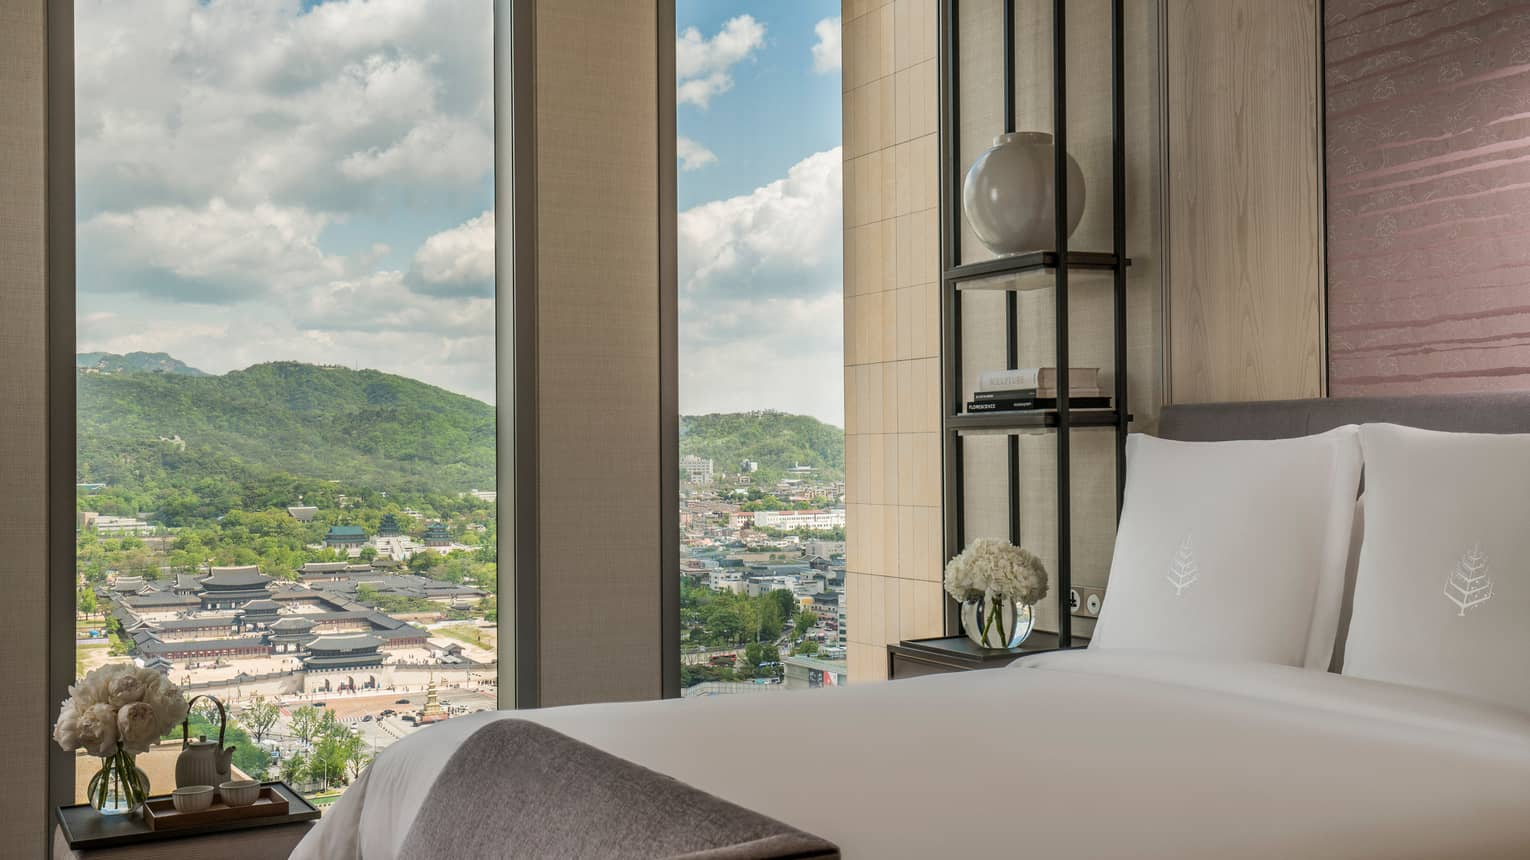 Palace-View Executive Suite bed, chaise at foot, shelf with vases, books beside window overlooking Gyeongbokgung Palace